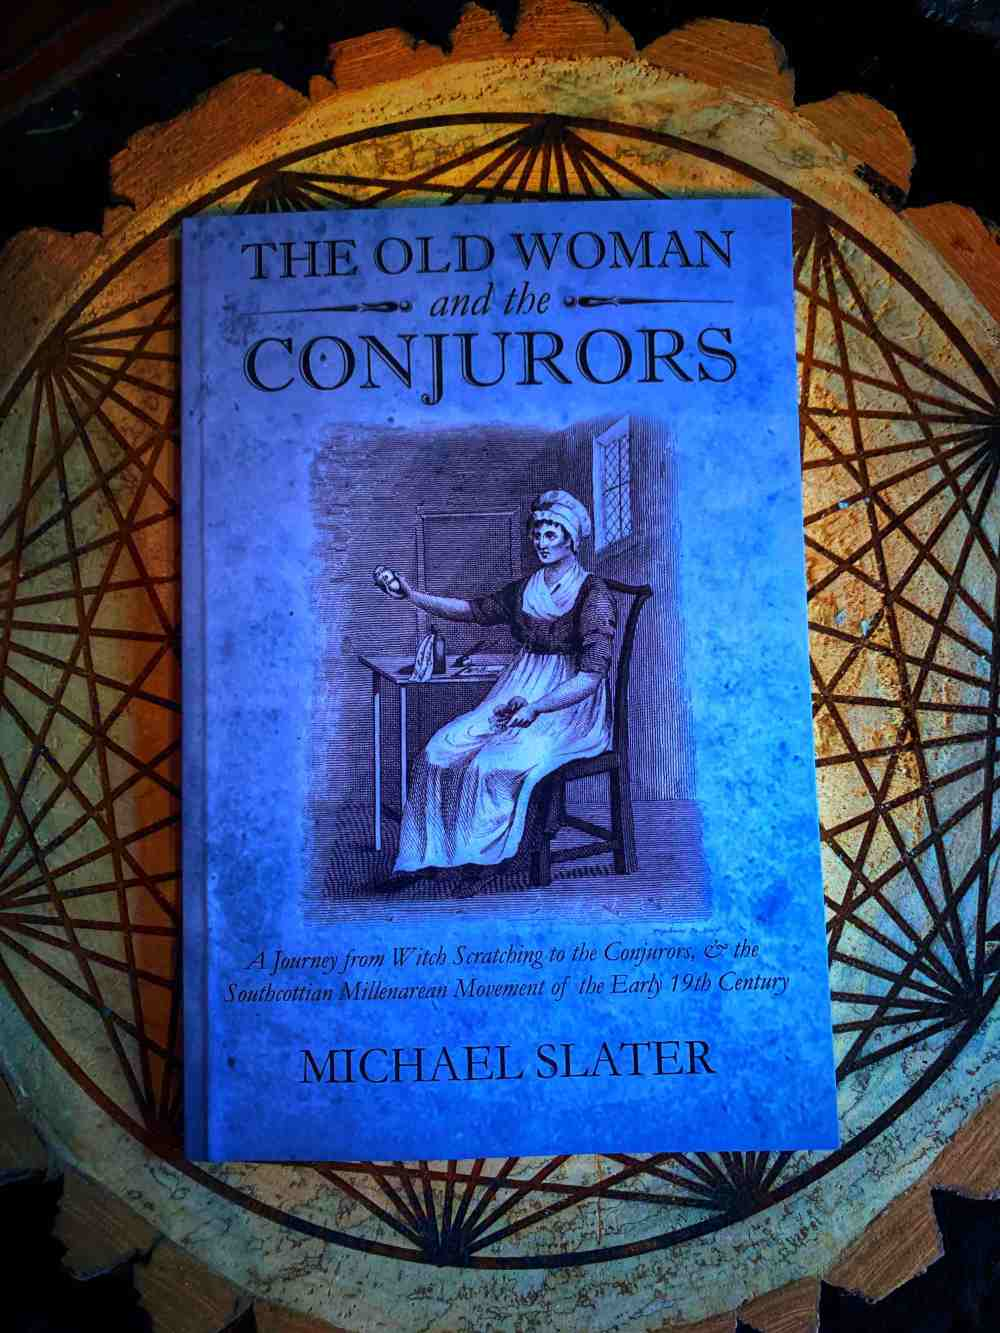 The Old Woman and the Conjurors